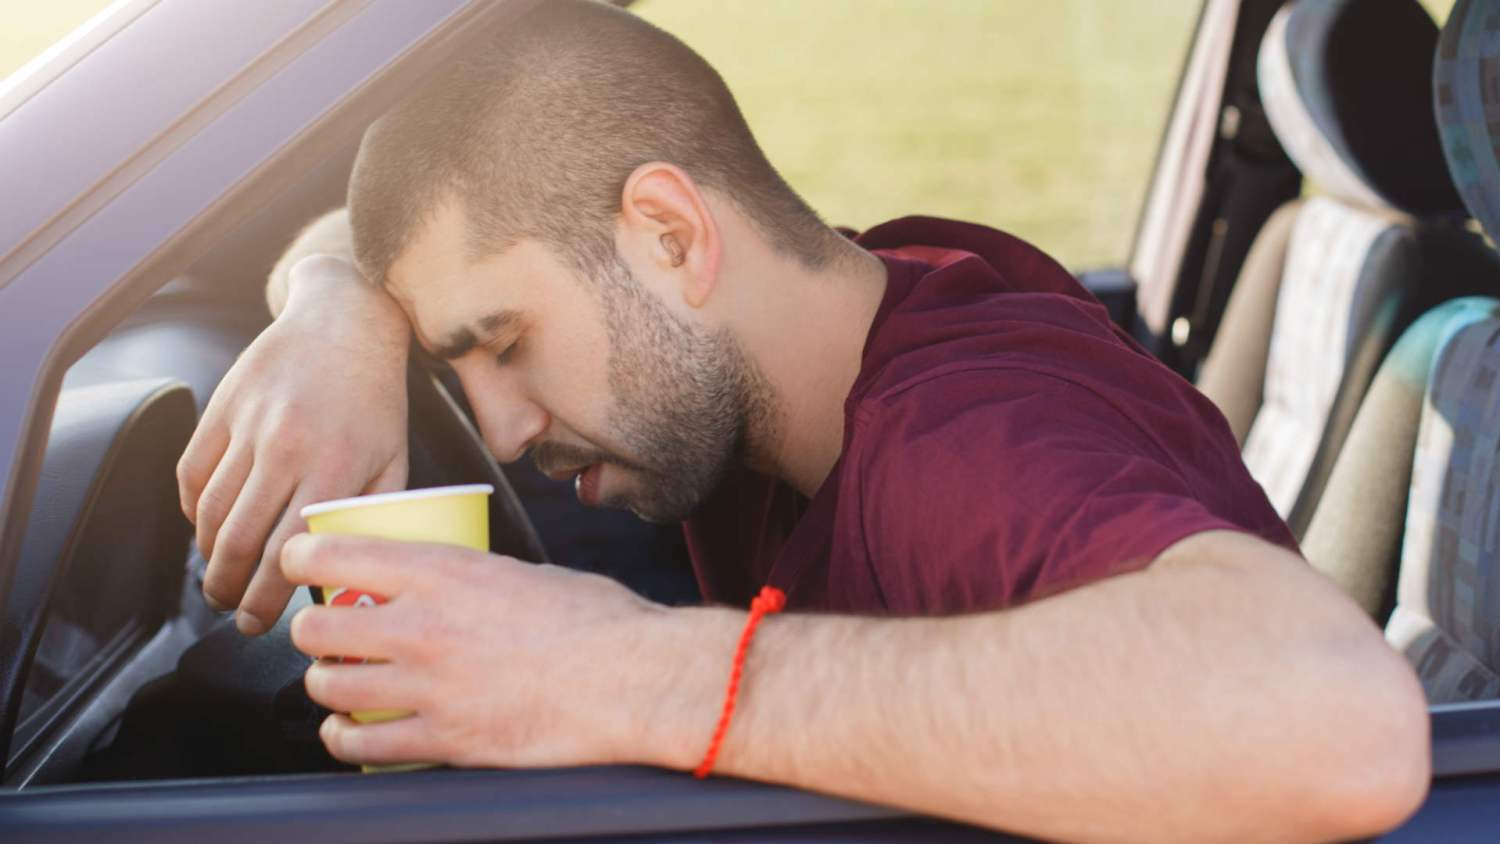 Coffee is a short-term fix for drowsy driving